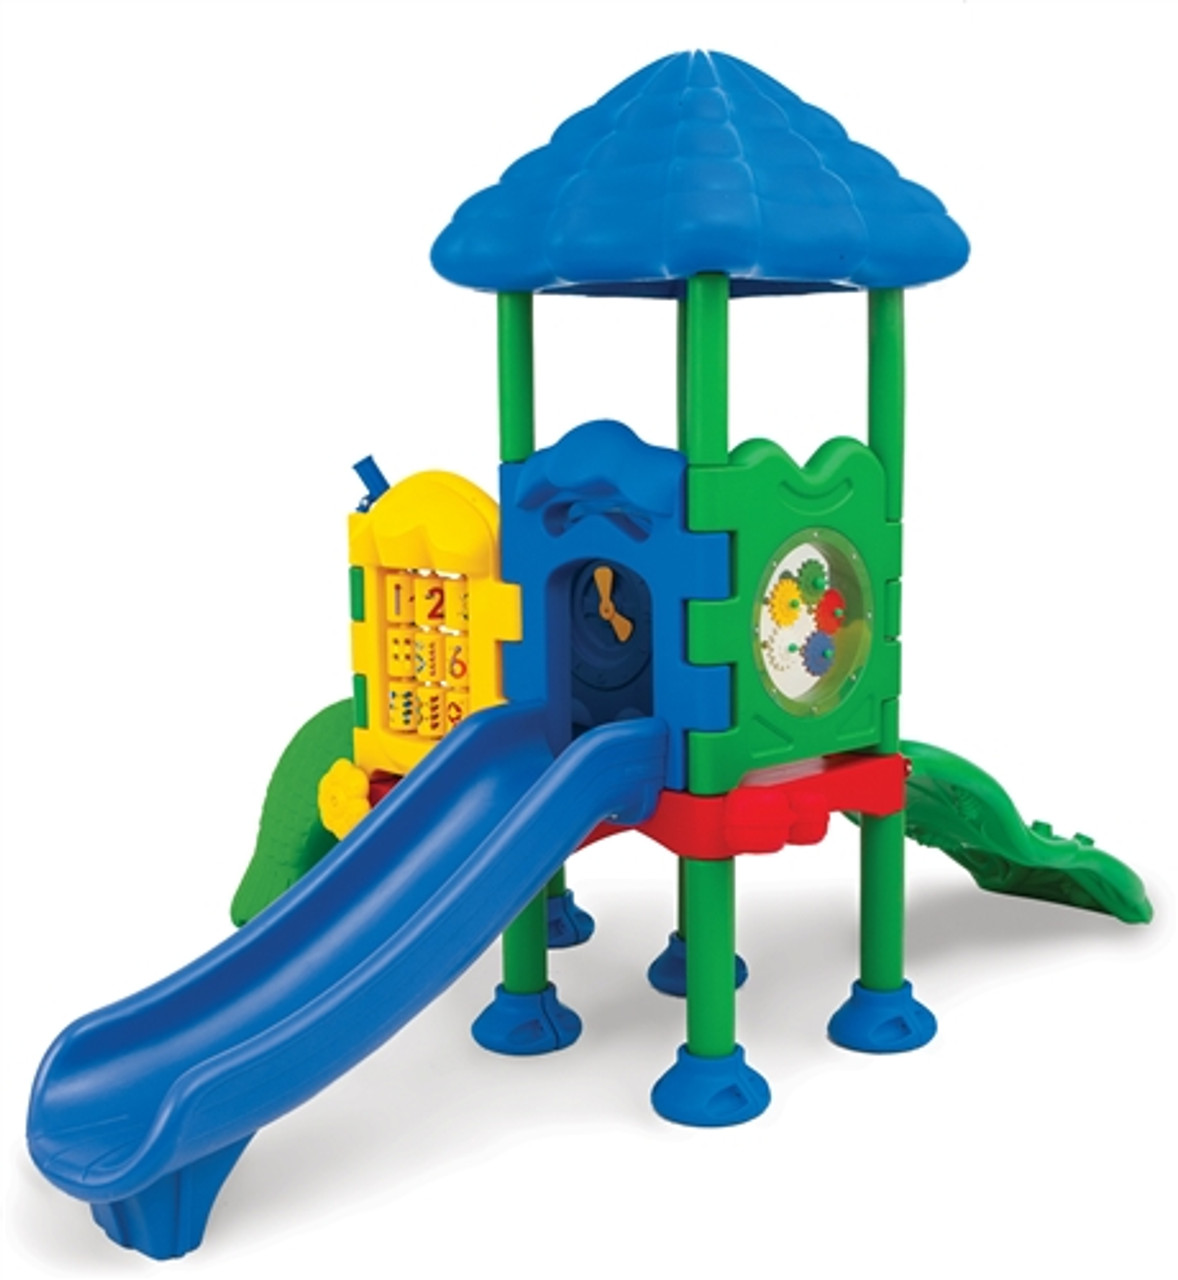 discovery center two children's outdoor playset with roof